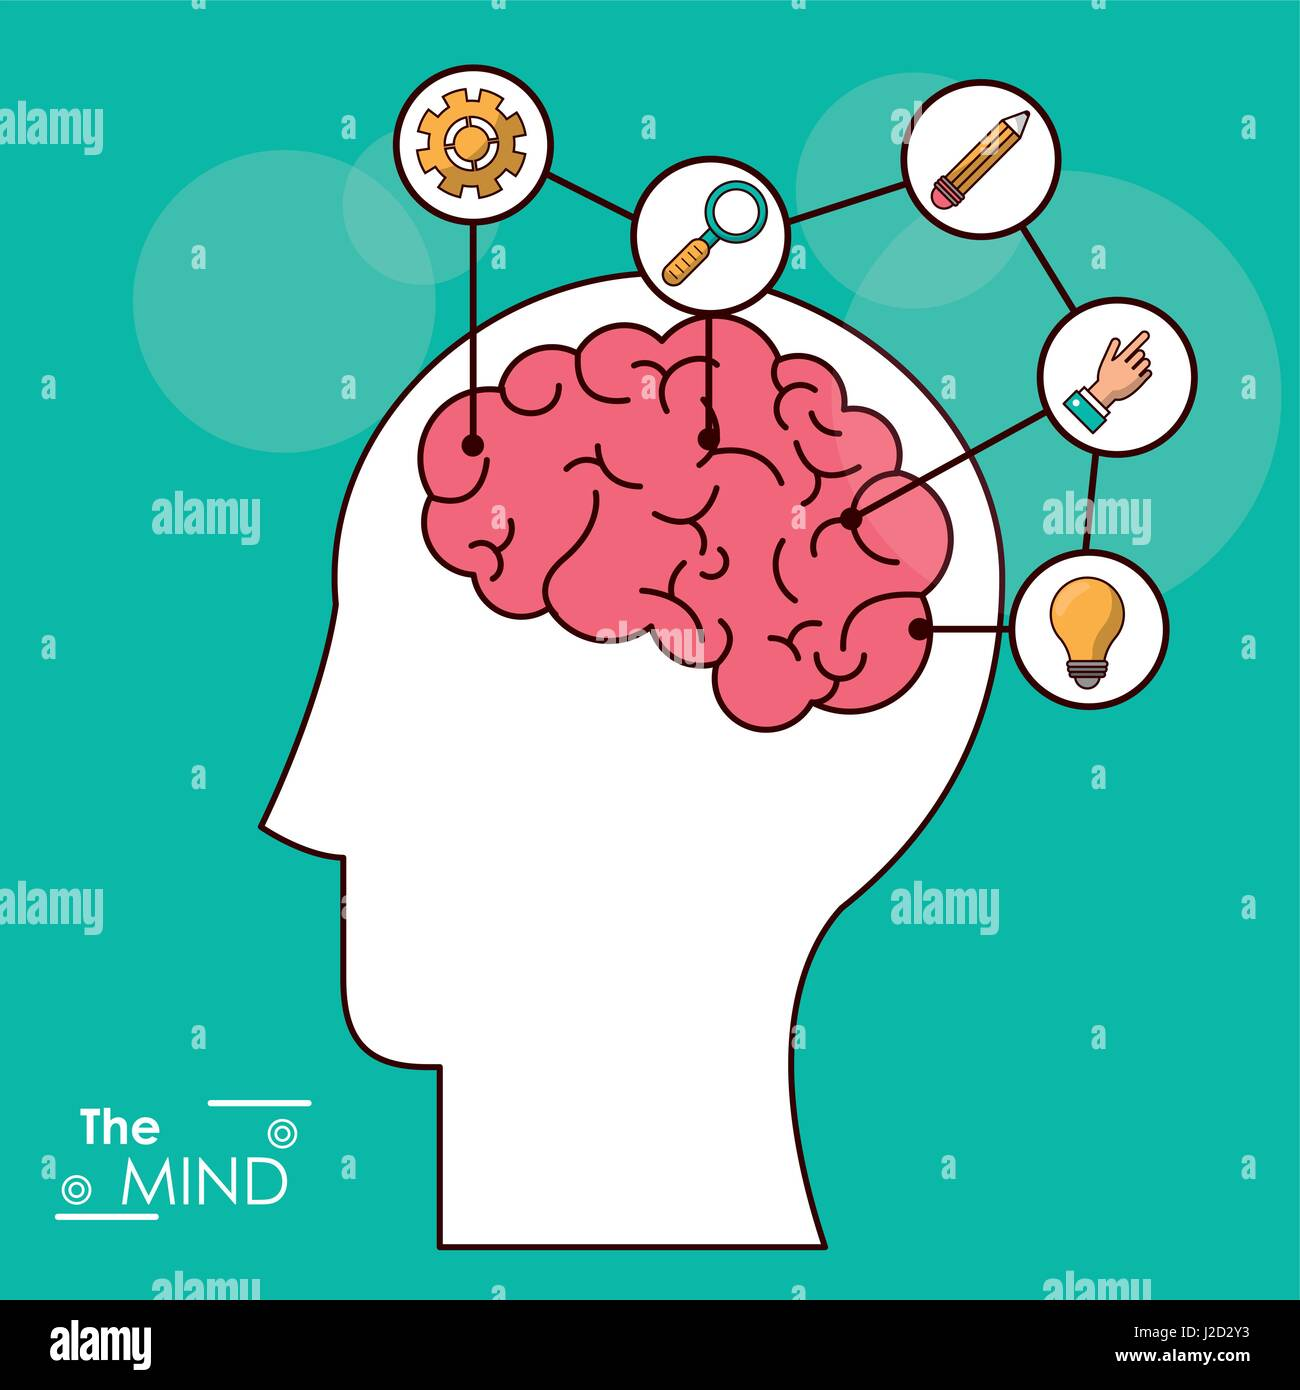 the mind head brain creativity solution knowledge think - Stock Image